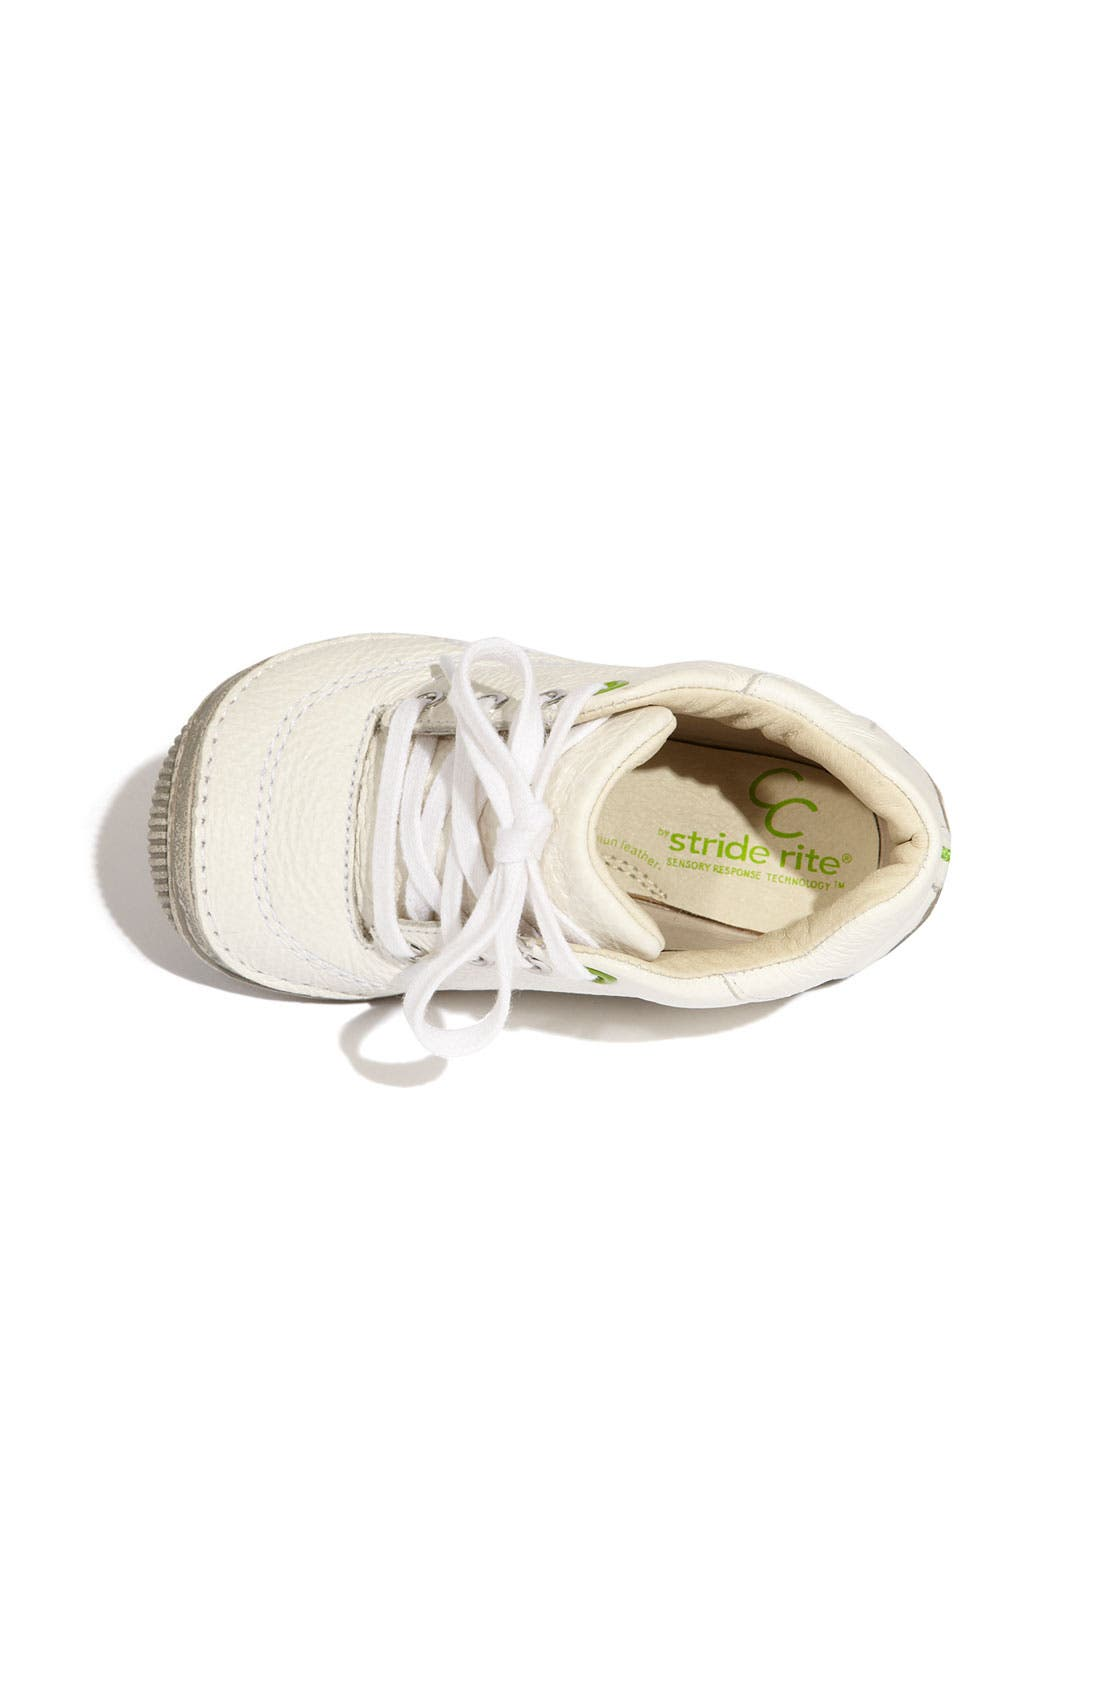 Alternate Image 3  - Stride Rite 'Brattle' Sneaker (Baby, Walker & Toddler)